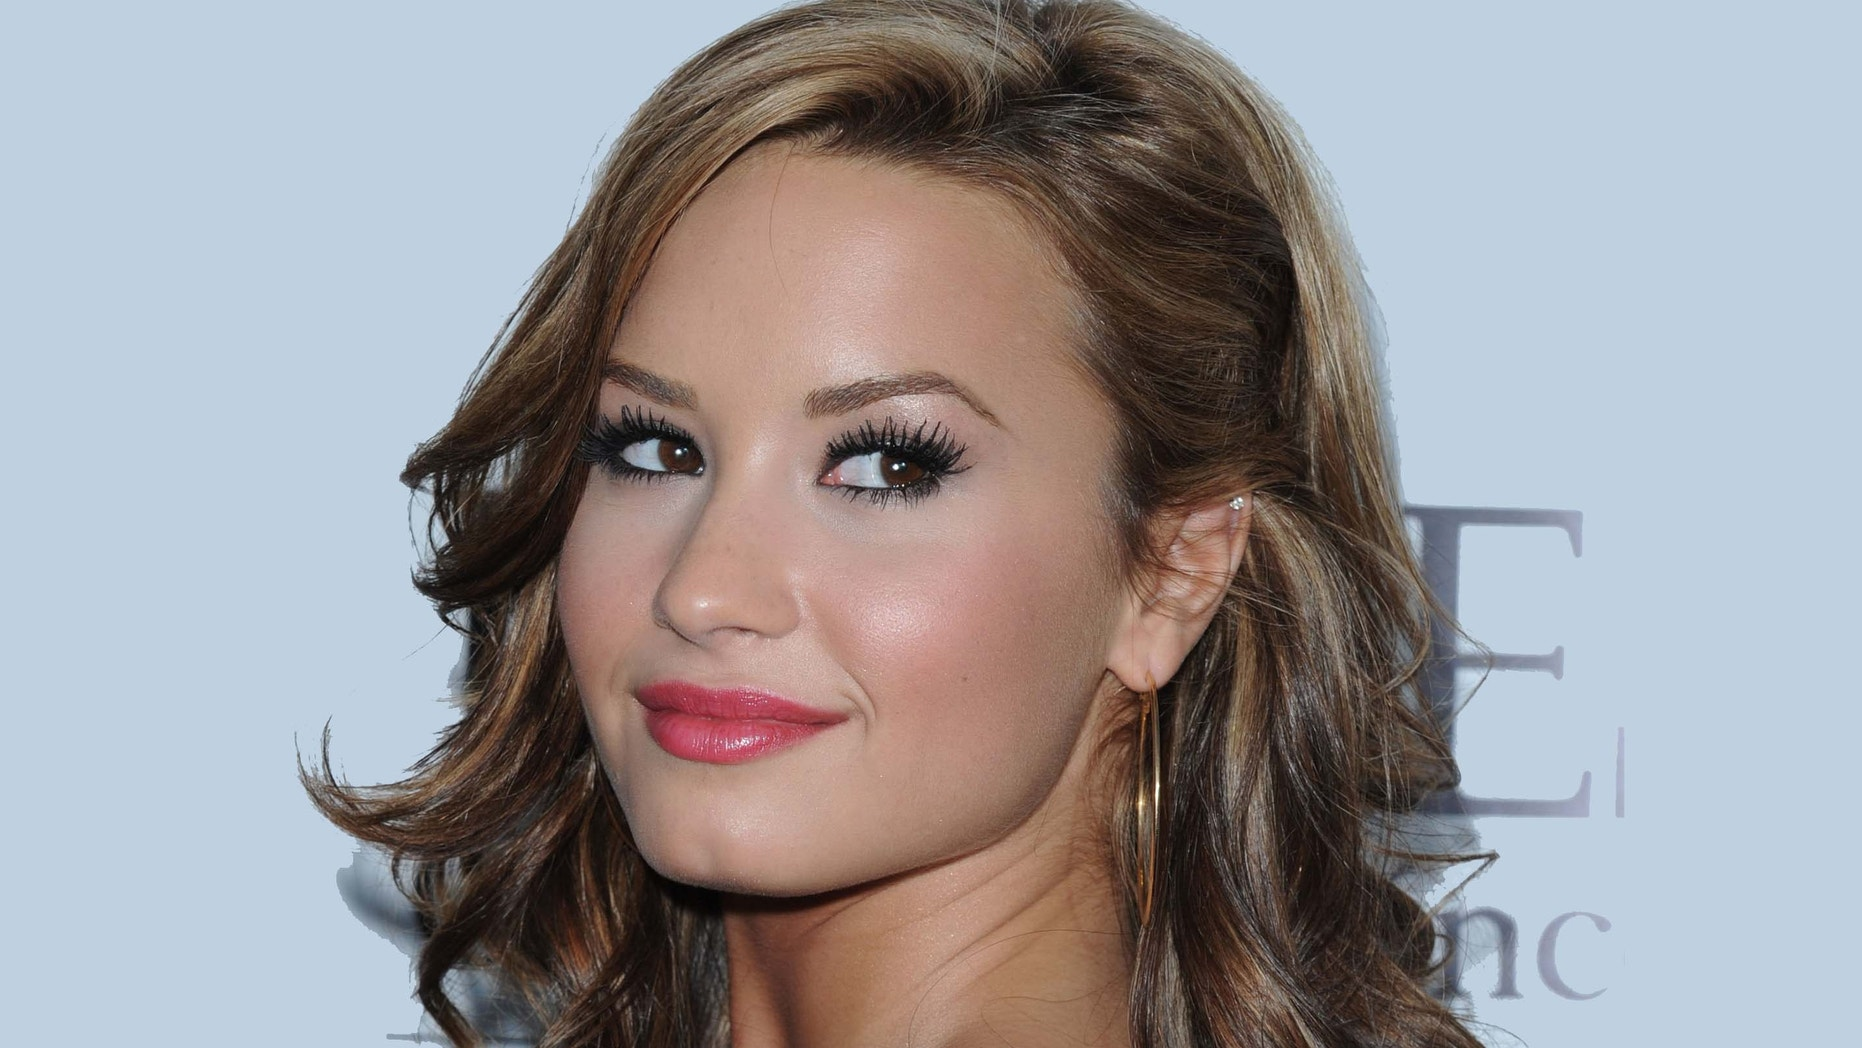 Sept. 23, 2010: Actress/singer Demi Lovato attends Padres El Contra Cancer's 25th anniversary gala at The Hollywood Palladium in Los Angeles, Calif.